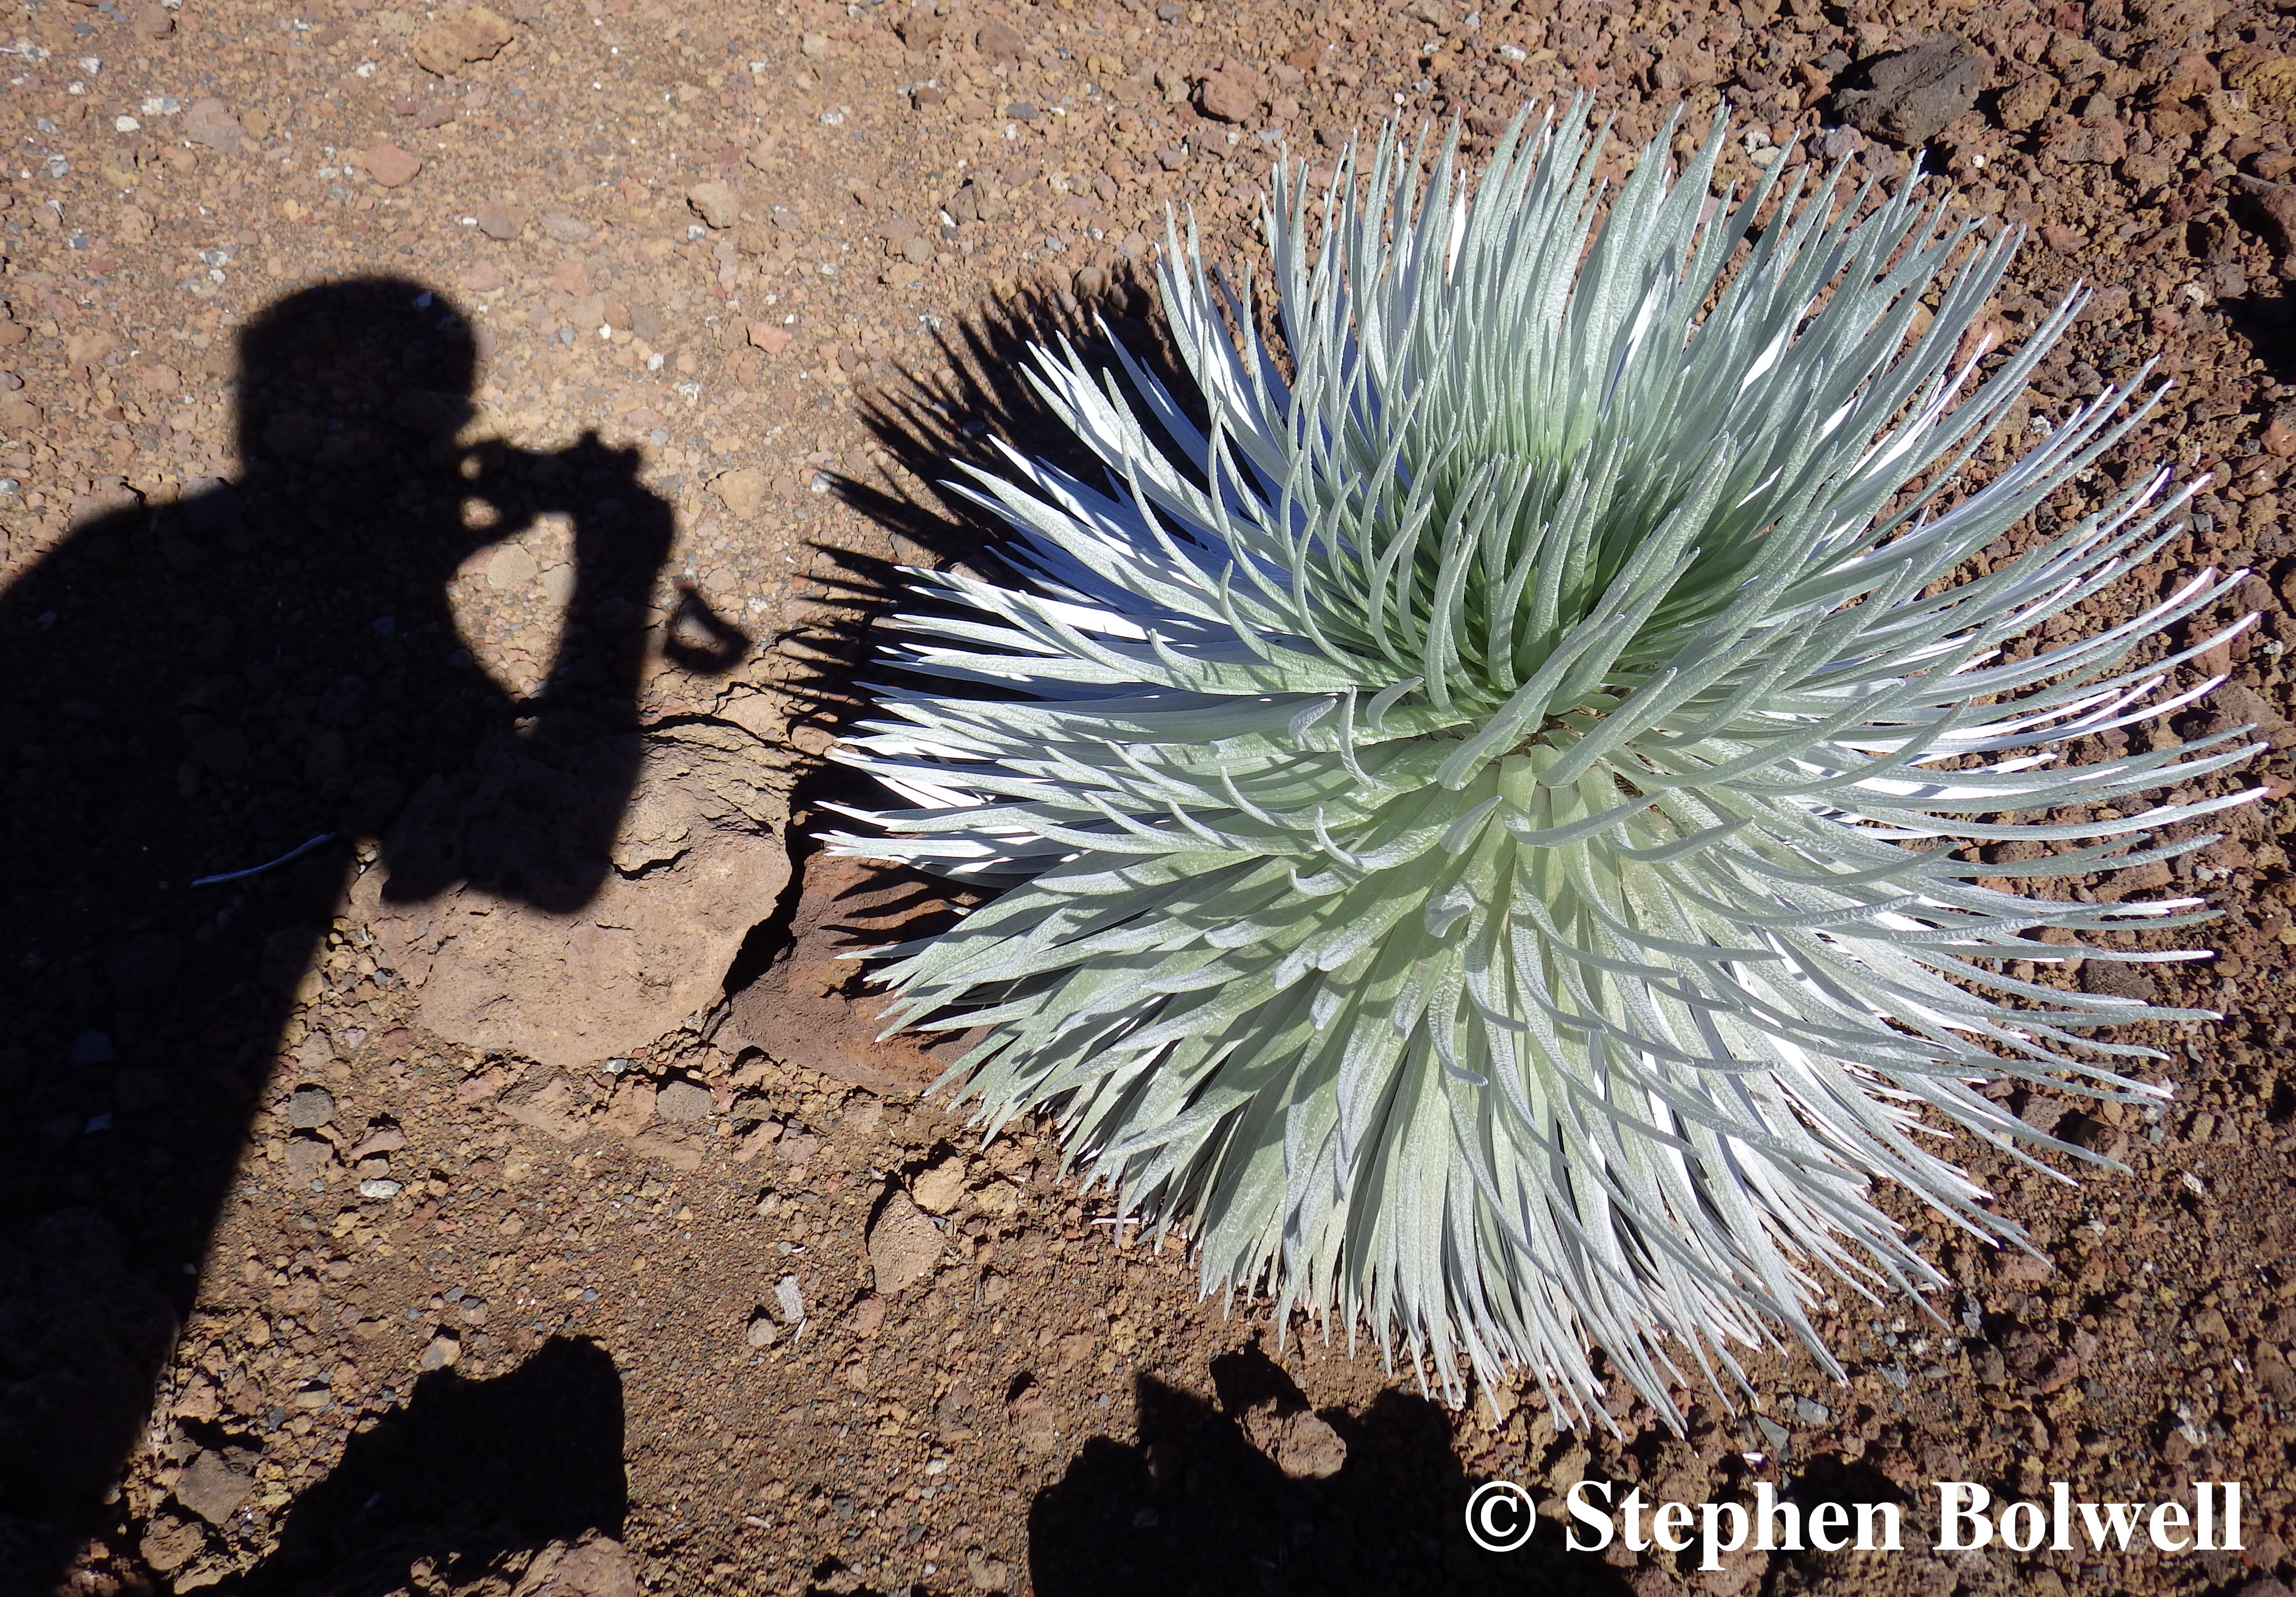 Photographing a young silversword in the stark lighting of a sunny day up on Haleakala.